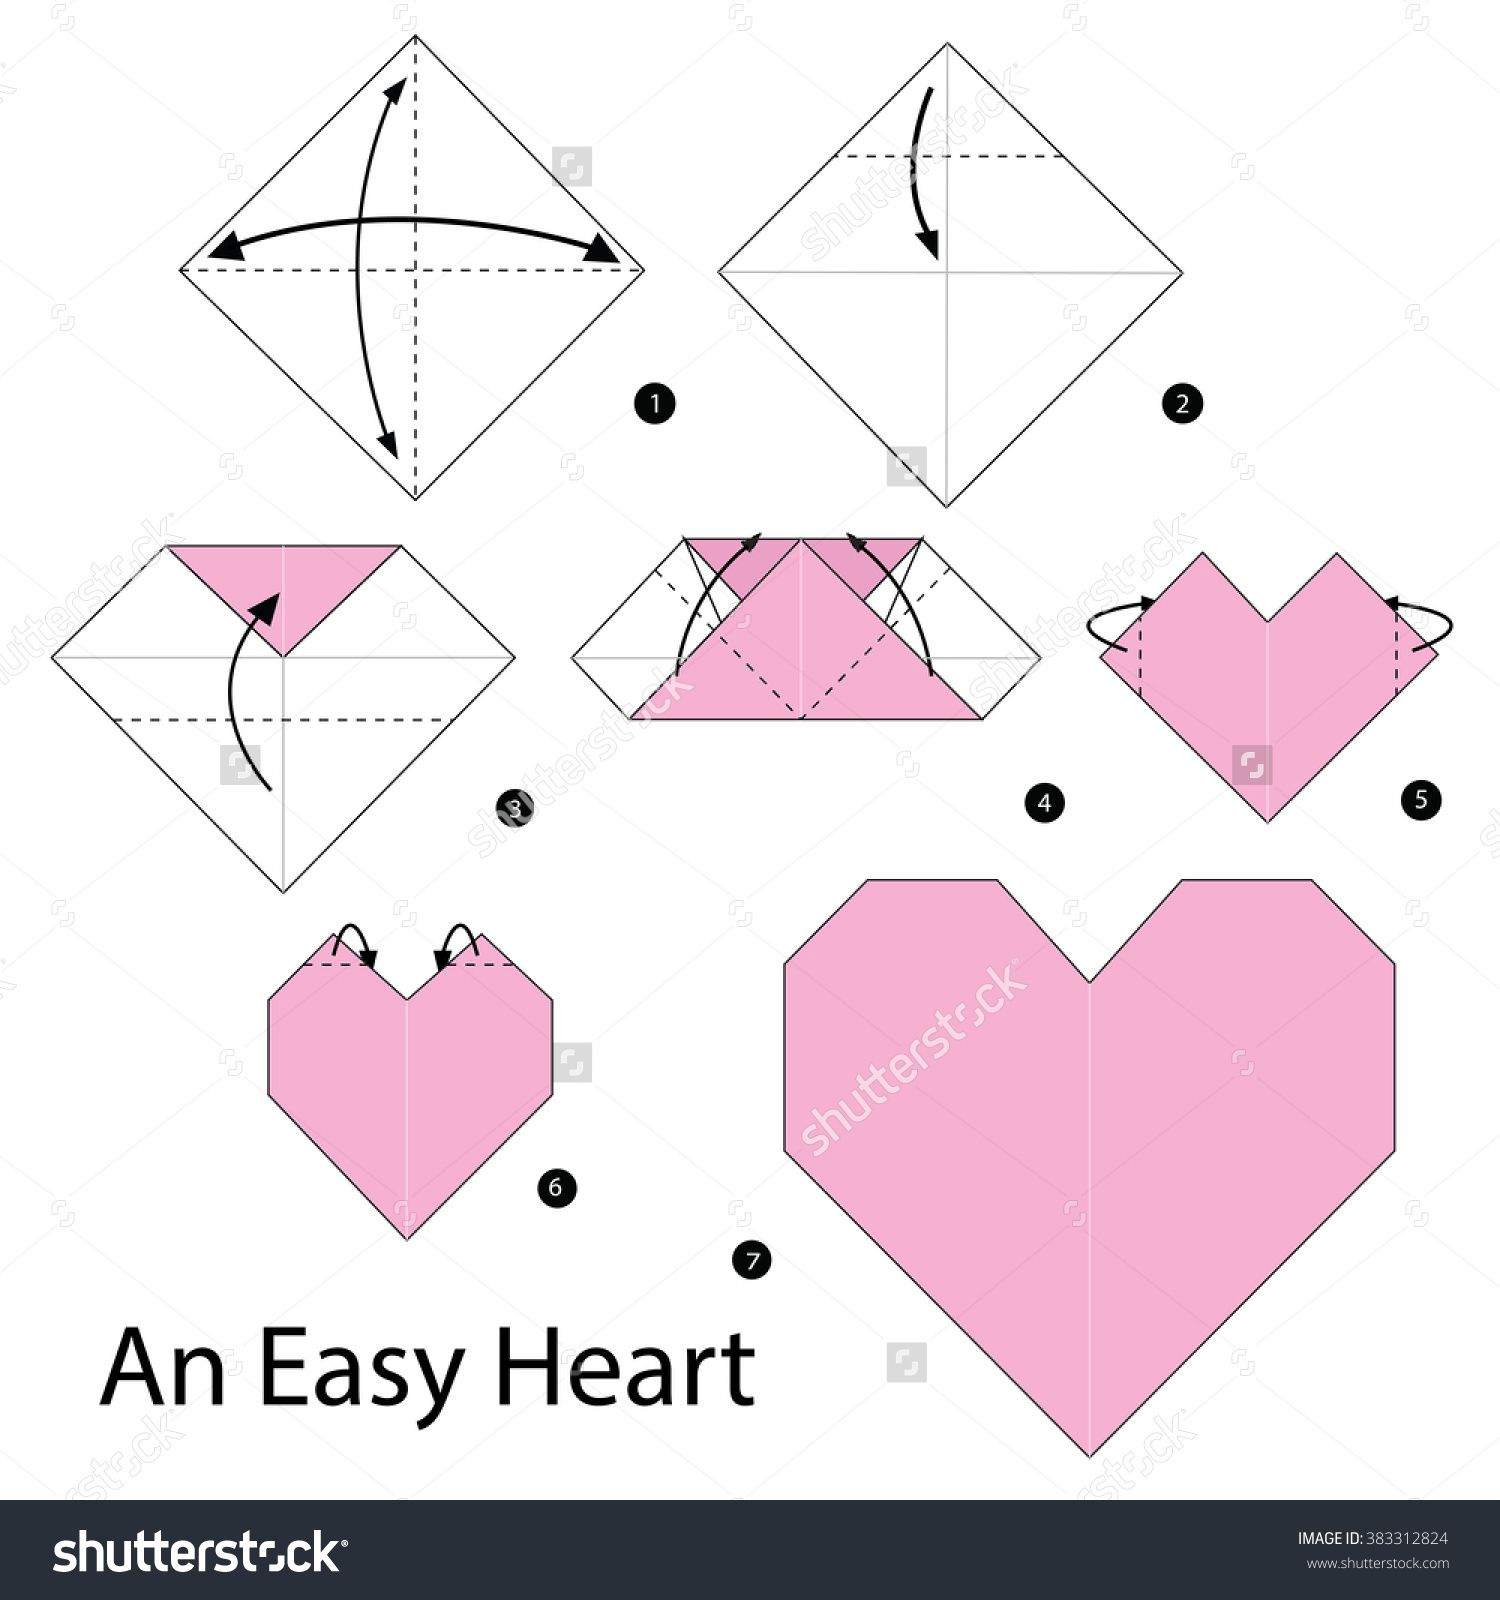 27 Inspired Image of Diy Origami Heart | origami tutorial ... - photo#27